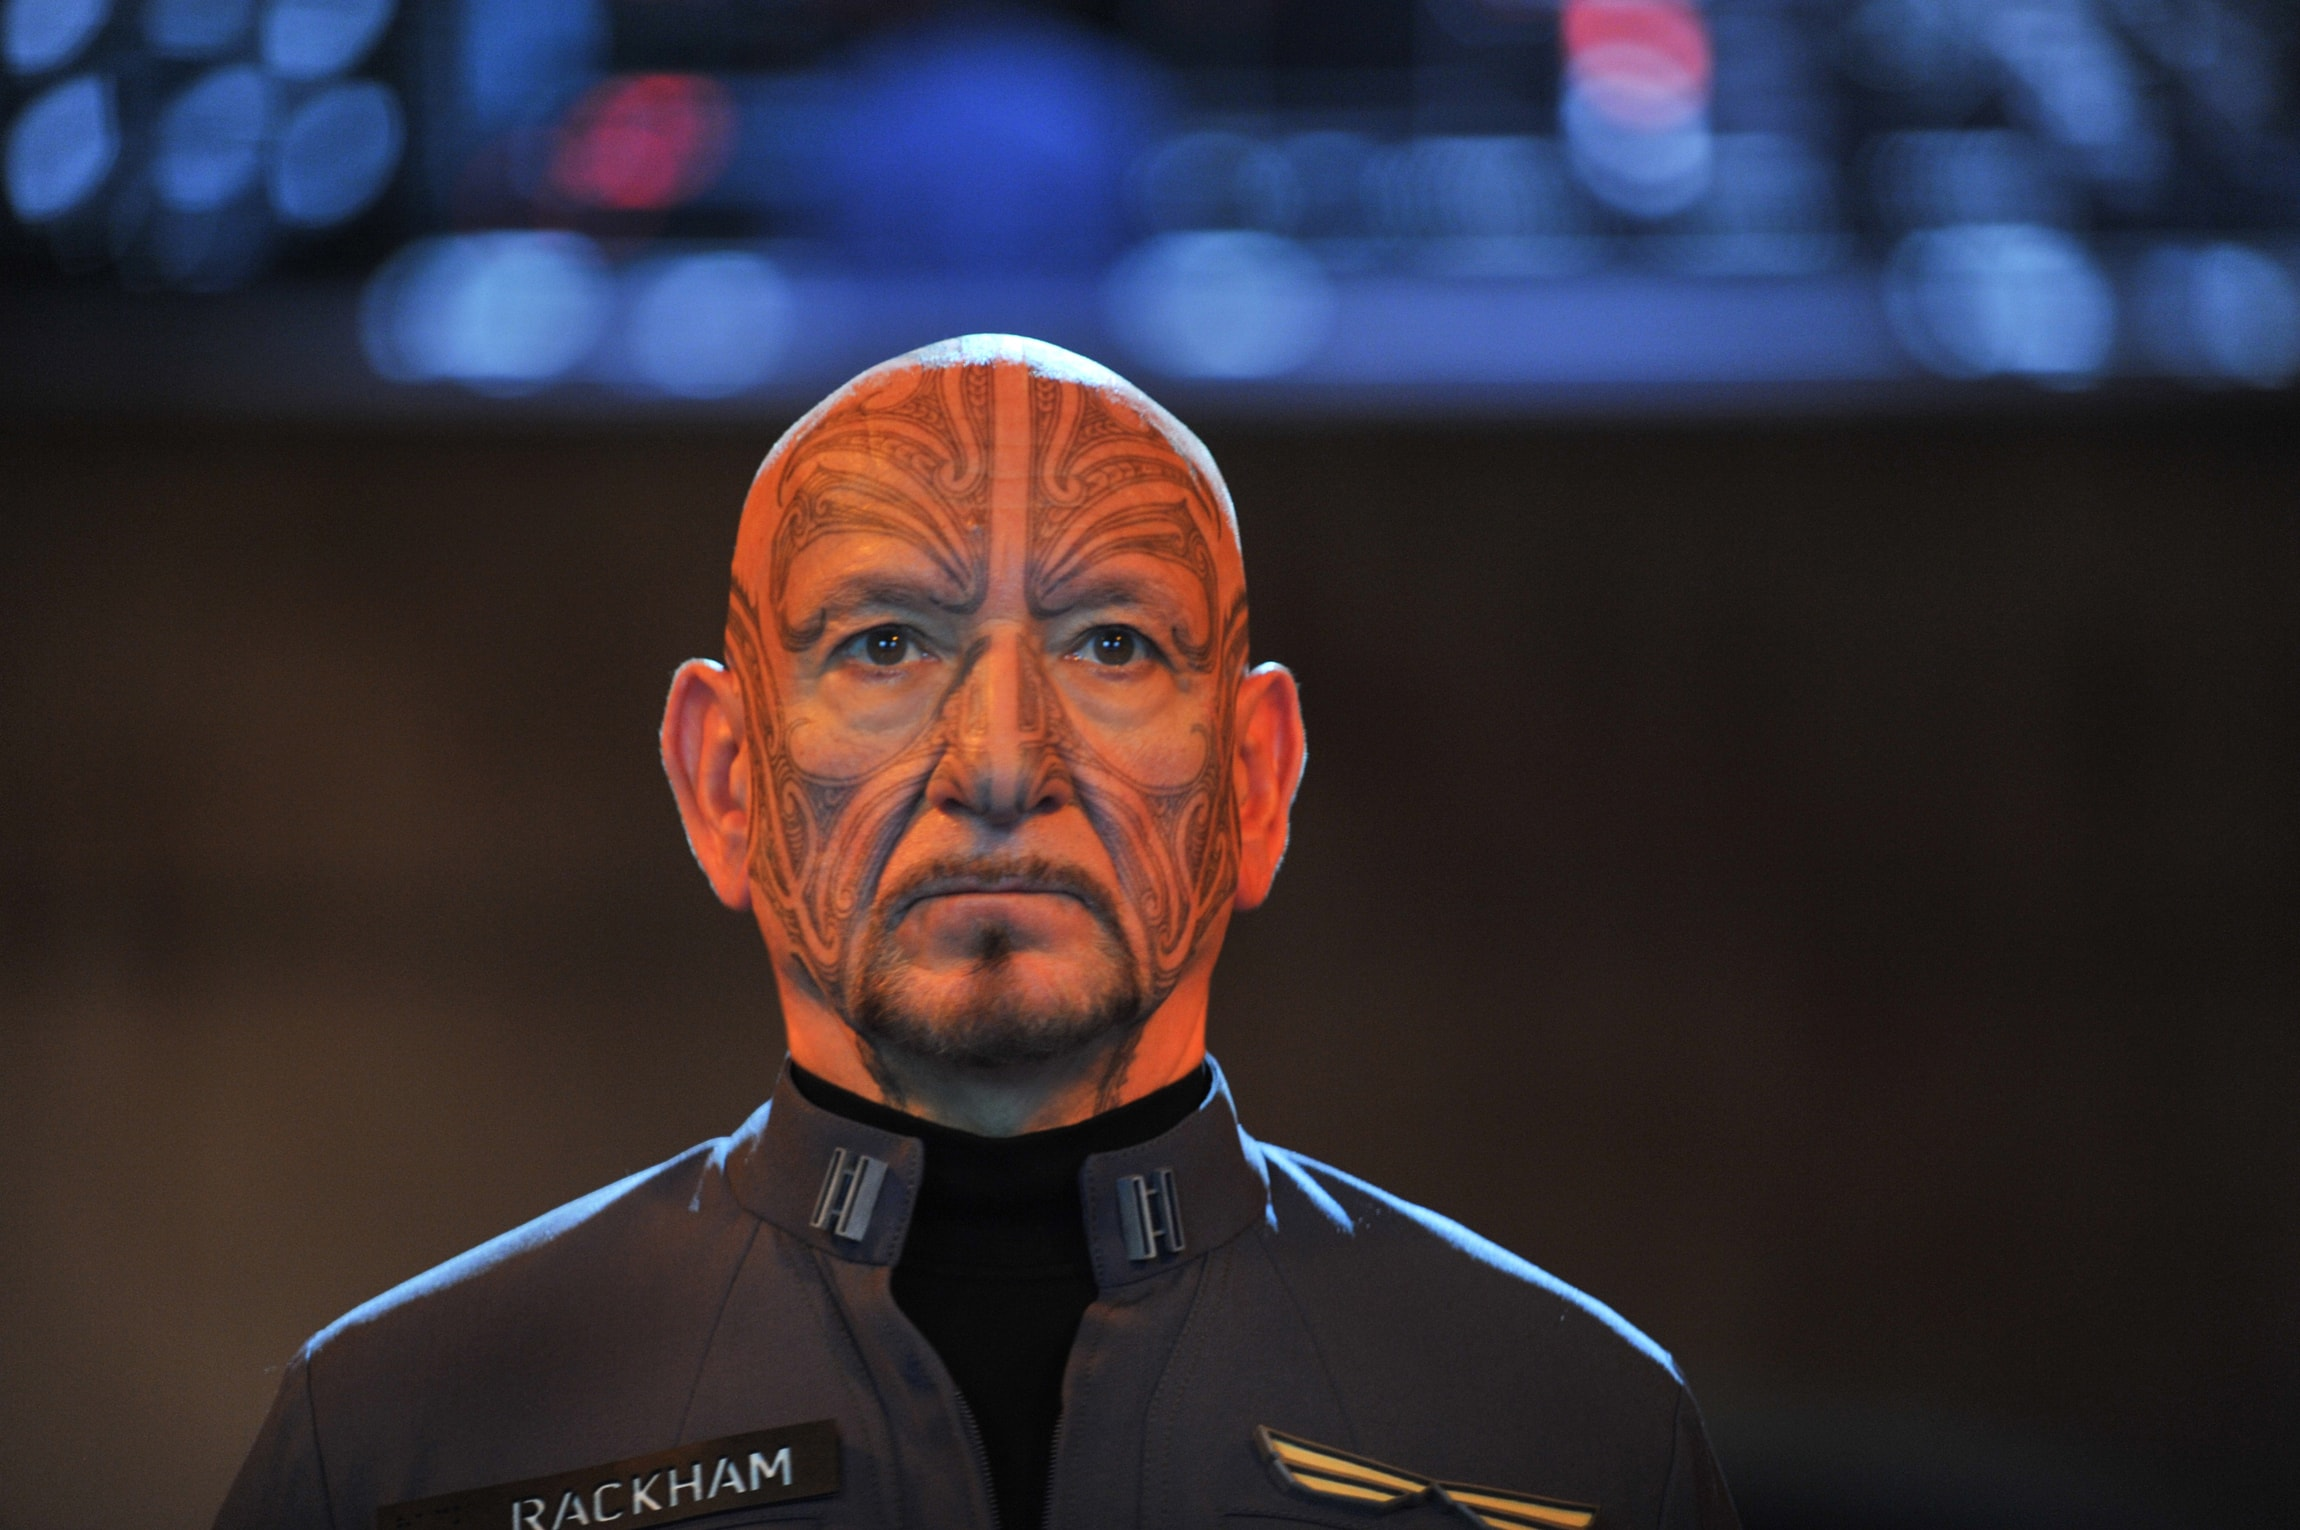 Ben Kingsley Full hd wallpapers